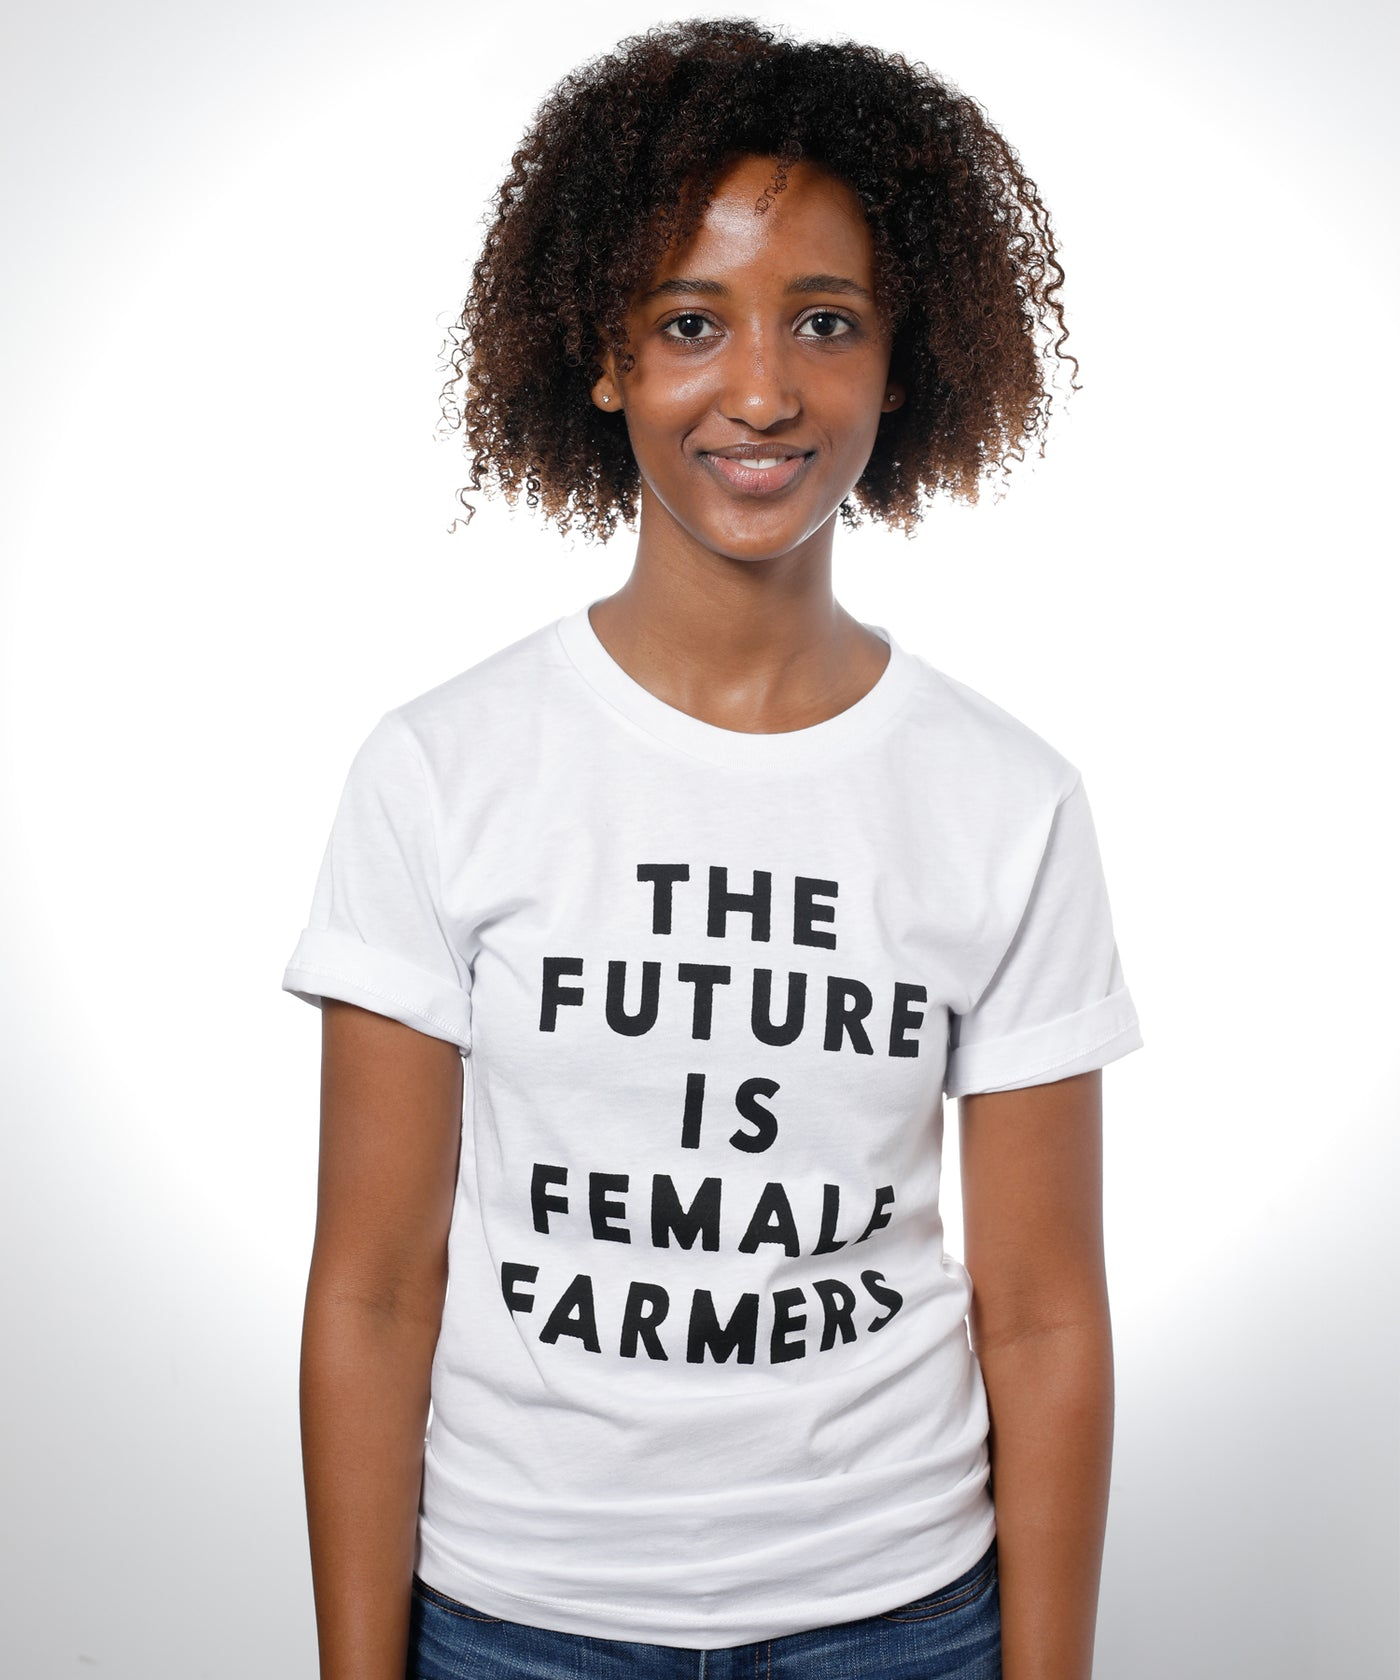 The Future is Female Farmers T-Shirt